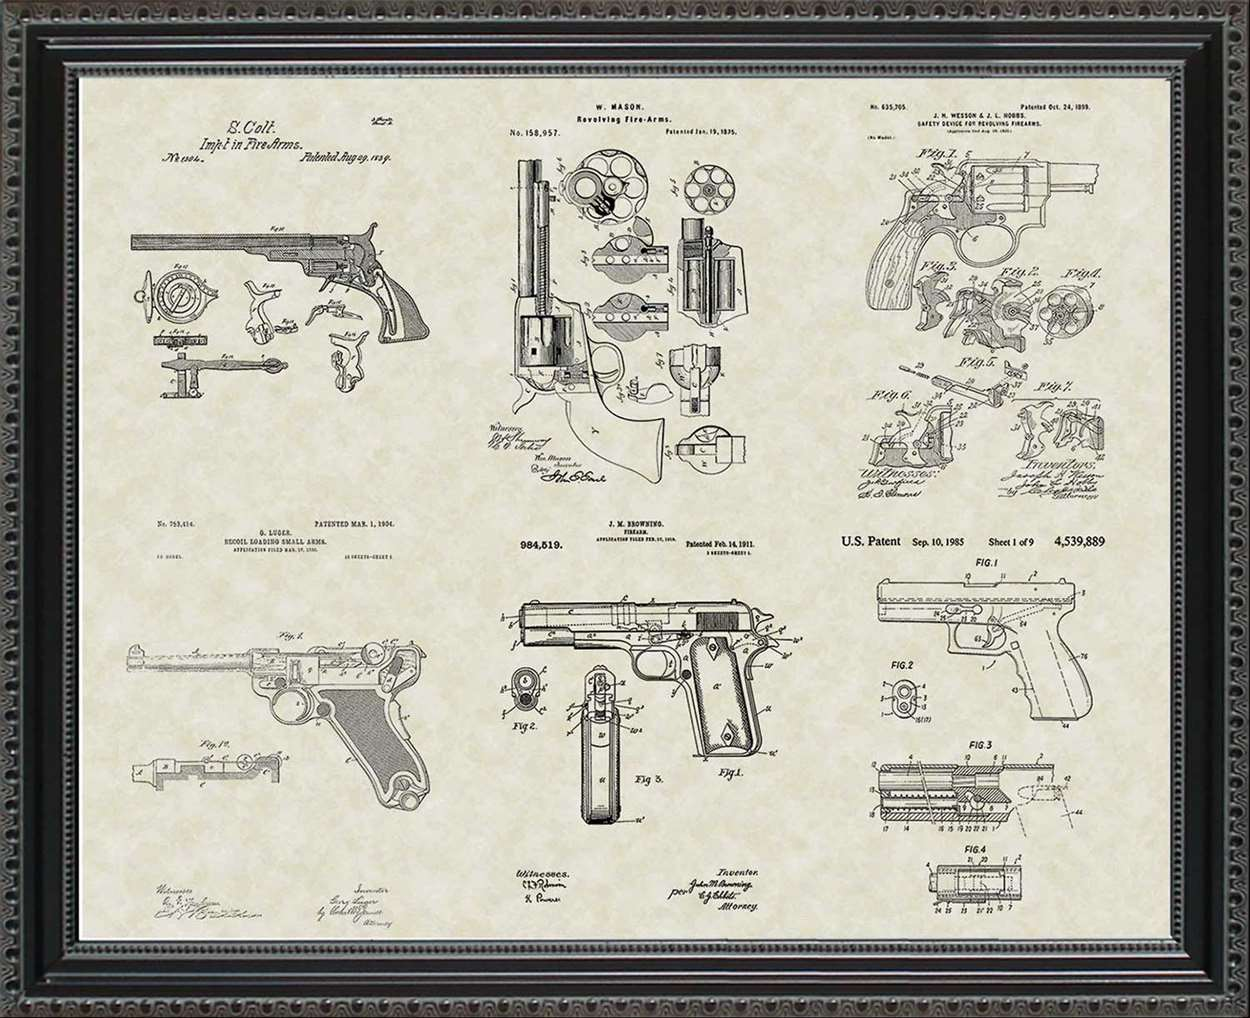 Handgun Patents, 20x24